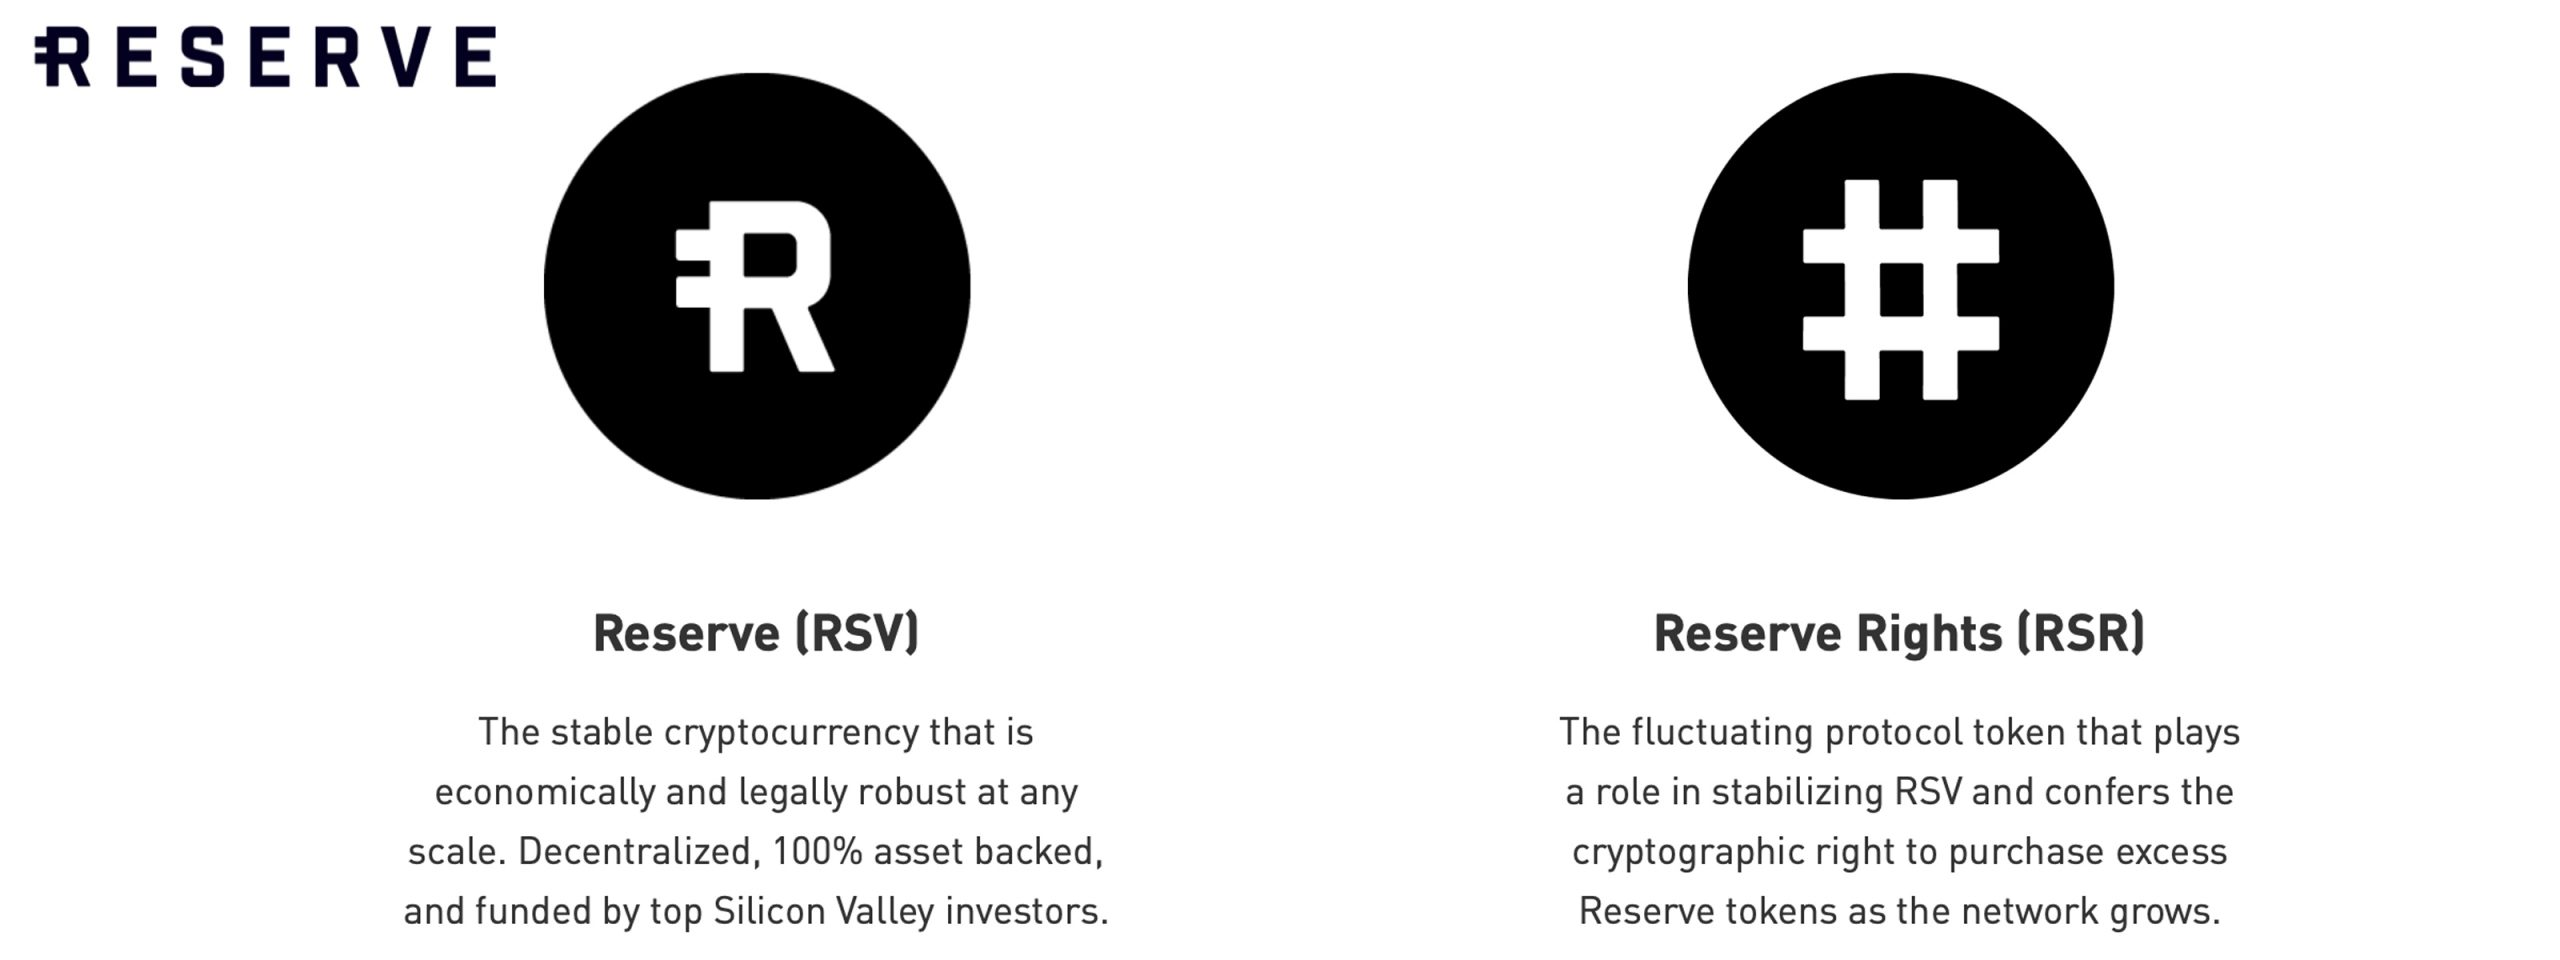 Bitcoin.com Exchange Now Supports Reserve Stablecoin RSV and the Utility Token RSR